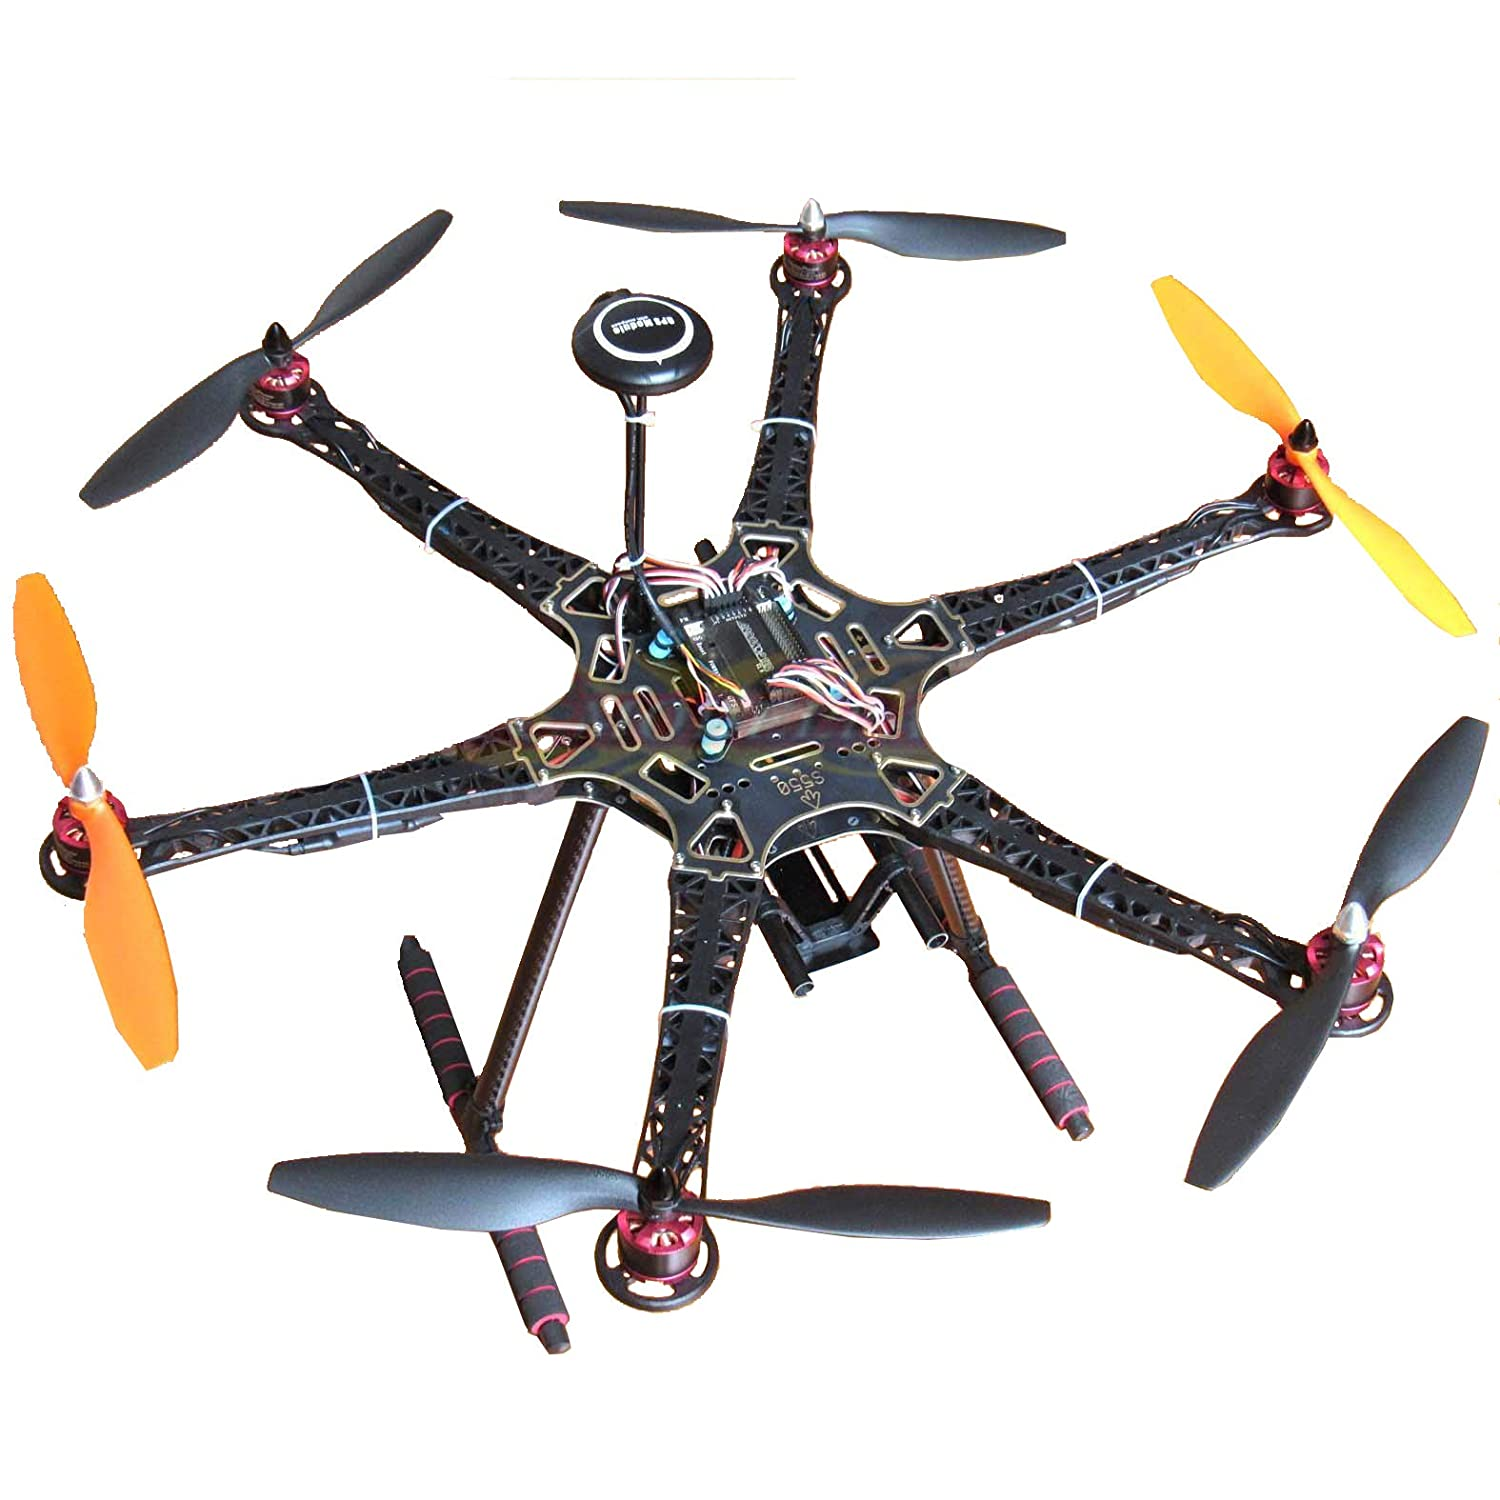 My selection of a drone building kit project